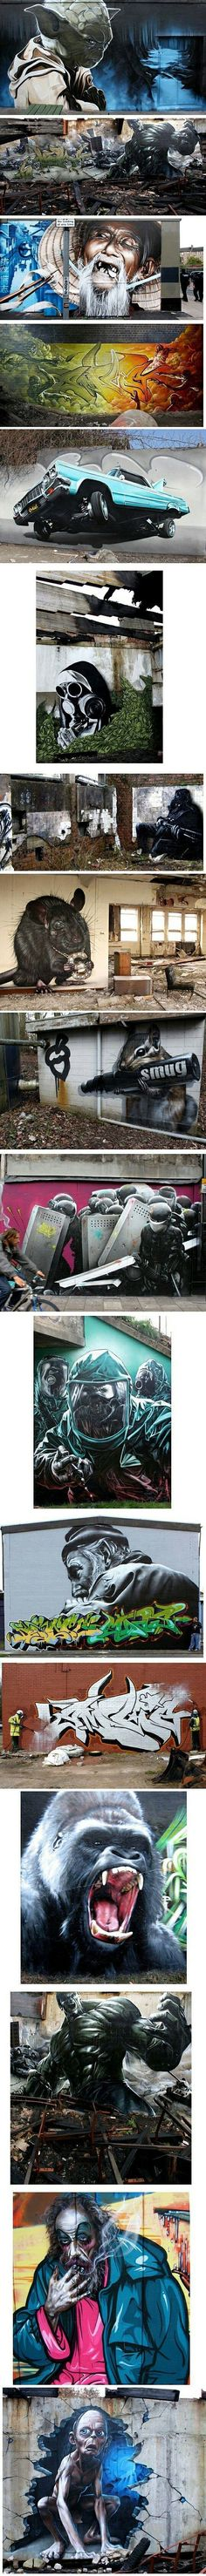 This is real graffiti